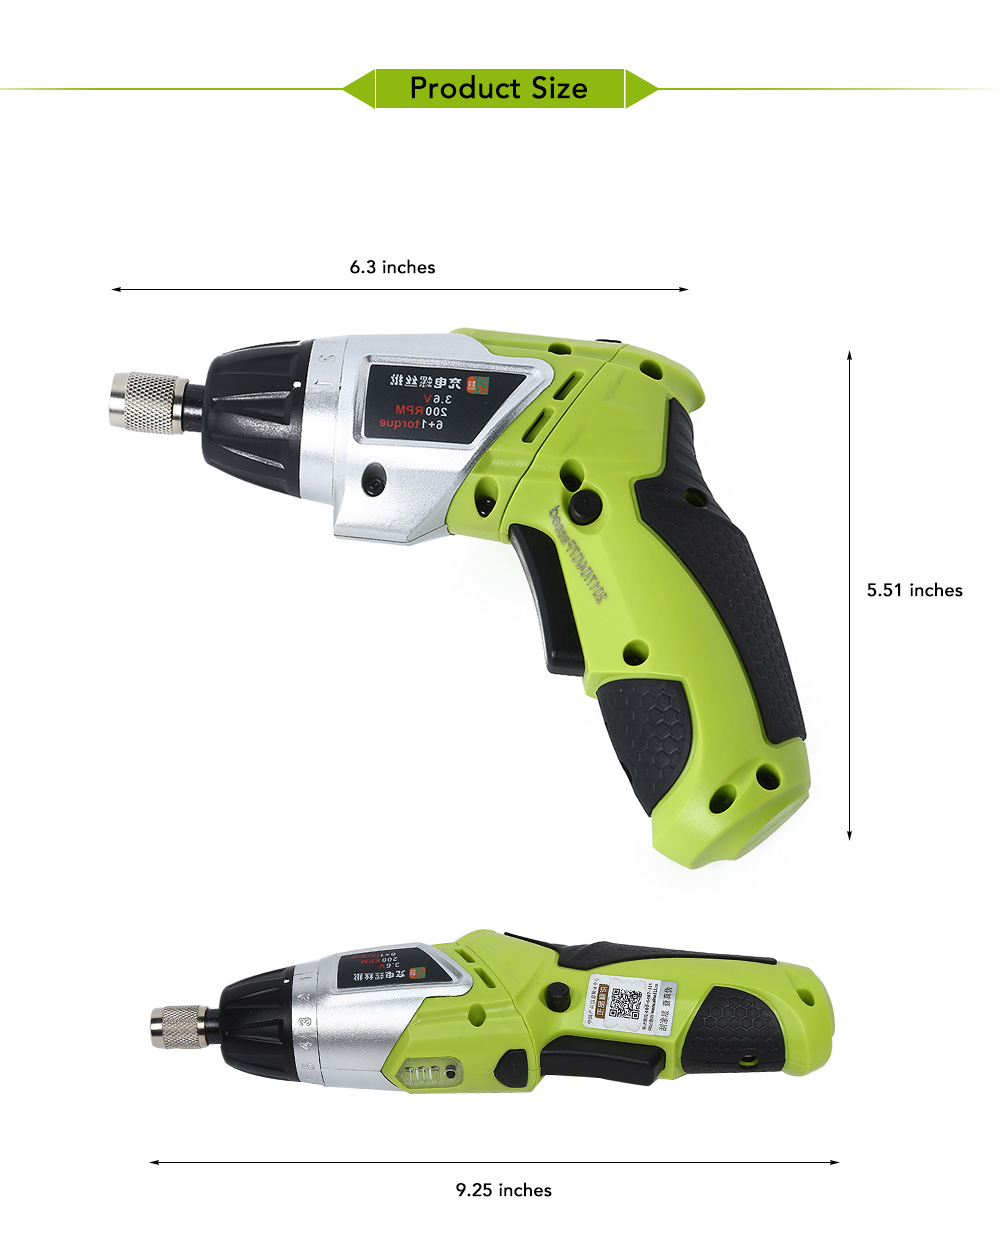 Hf2d3624e82094ff386e18adcd50de94ef - 3.6V Rechargeable Battery Cordless Electric Drill Screwdriver with Bits Set